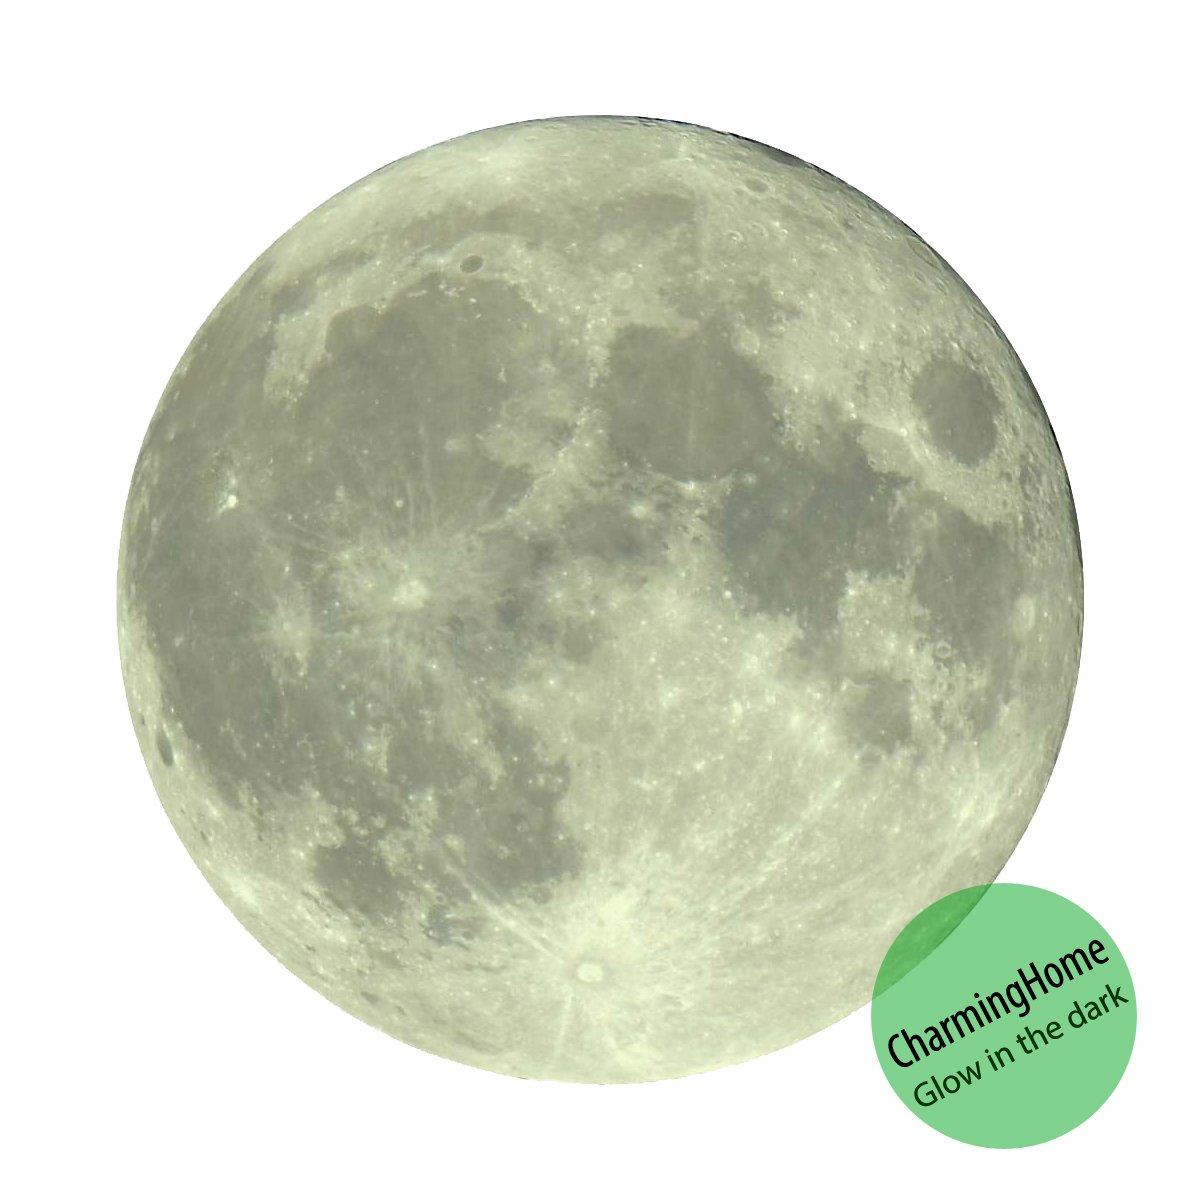 glow in the dark moon sticker moon decals glow moonlight glow glow in the dark moon sticker moon decals glow moonlight glow in the dark moon wall decal sticker 7 87 inches 20 cm by charminghome amazon com